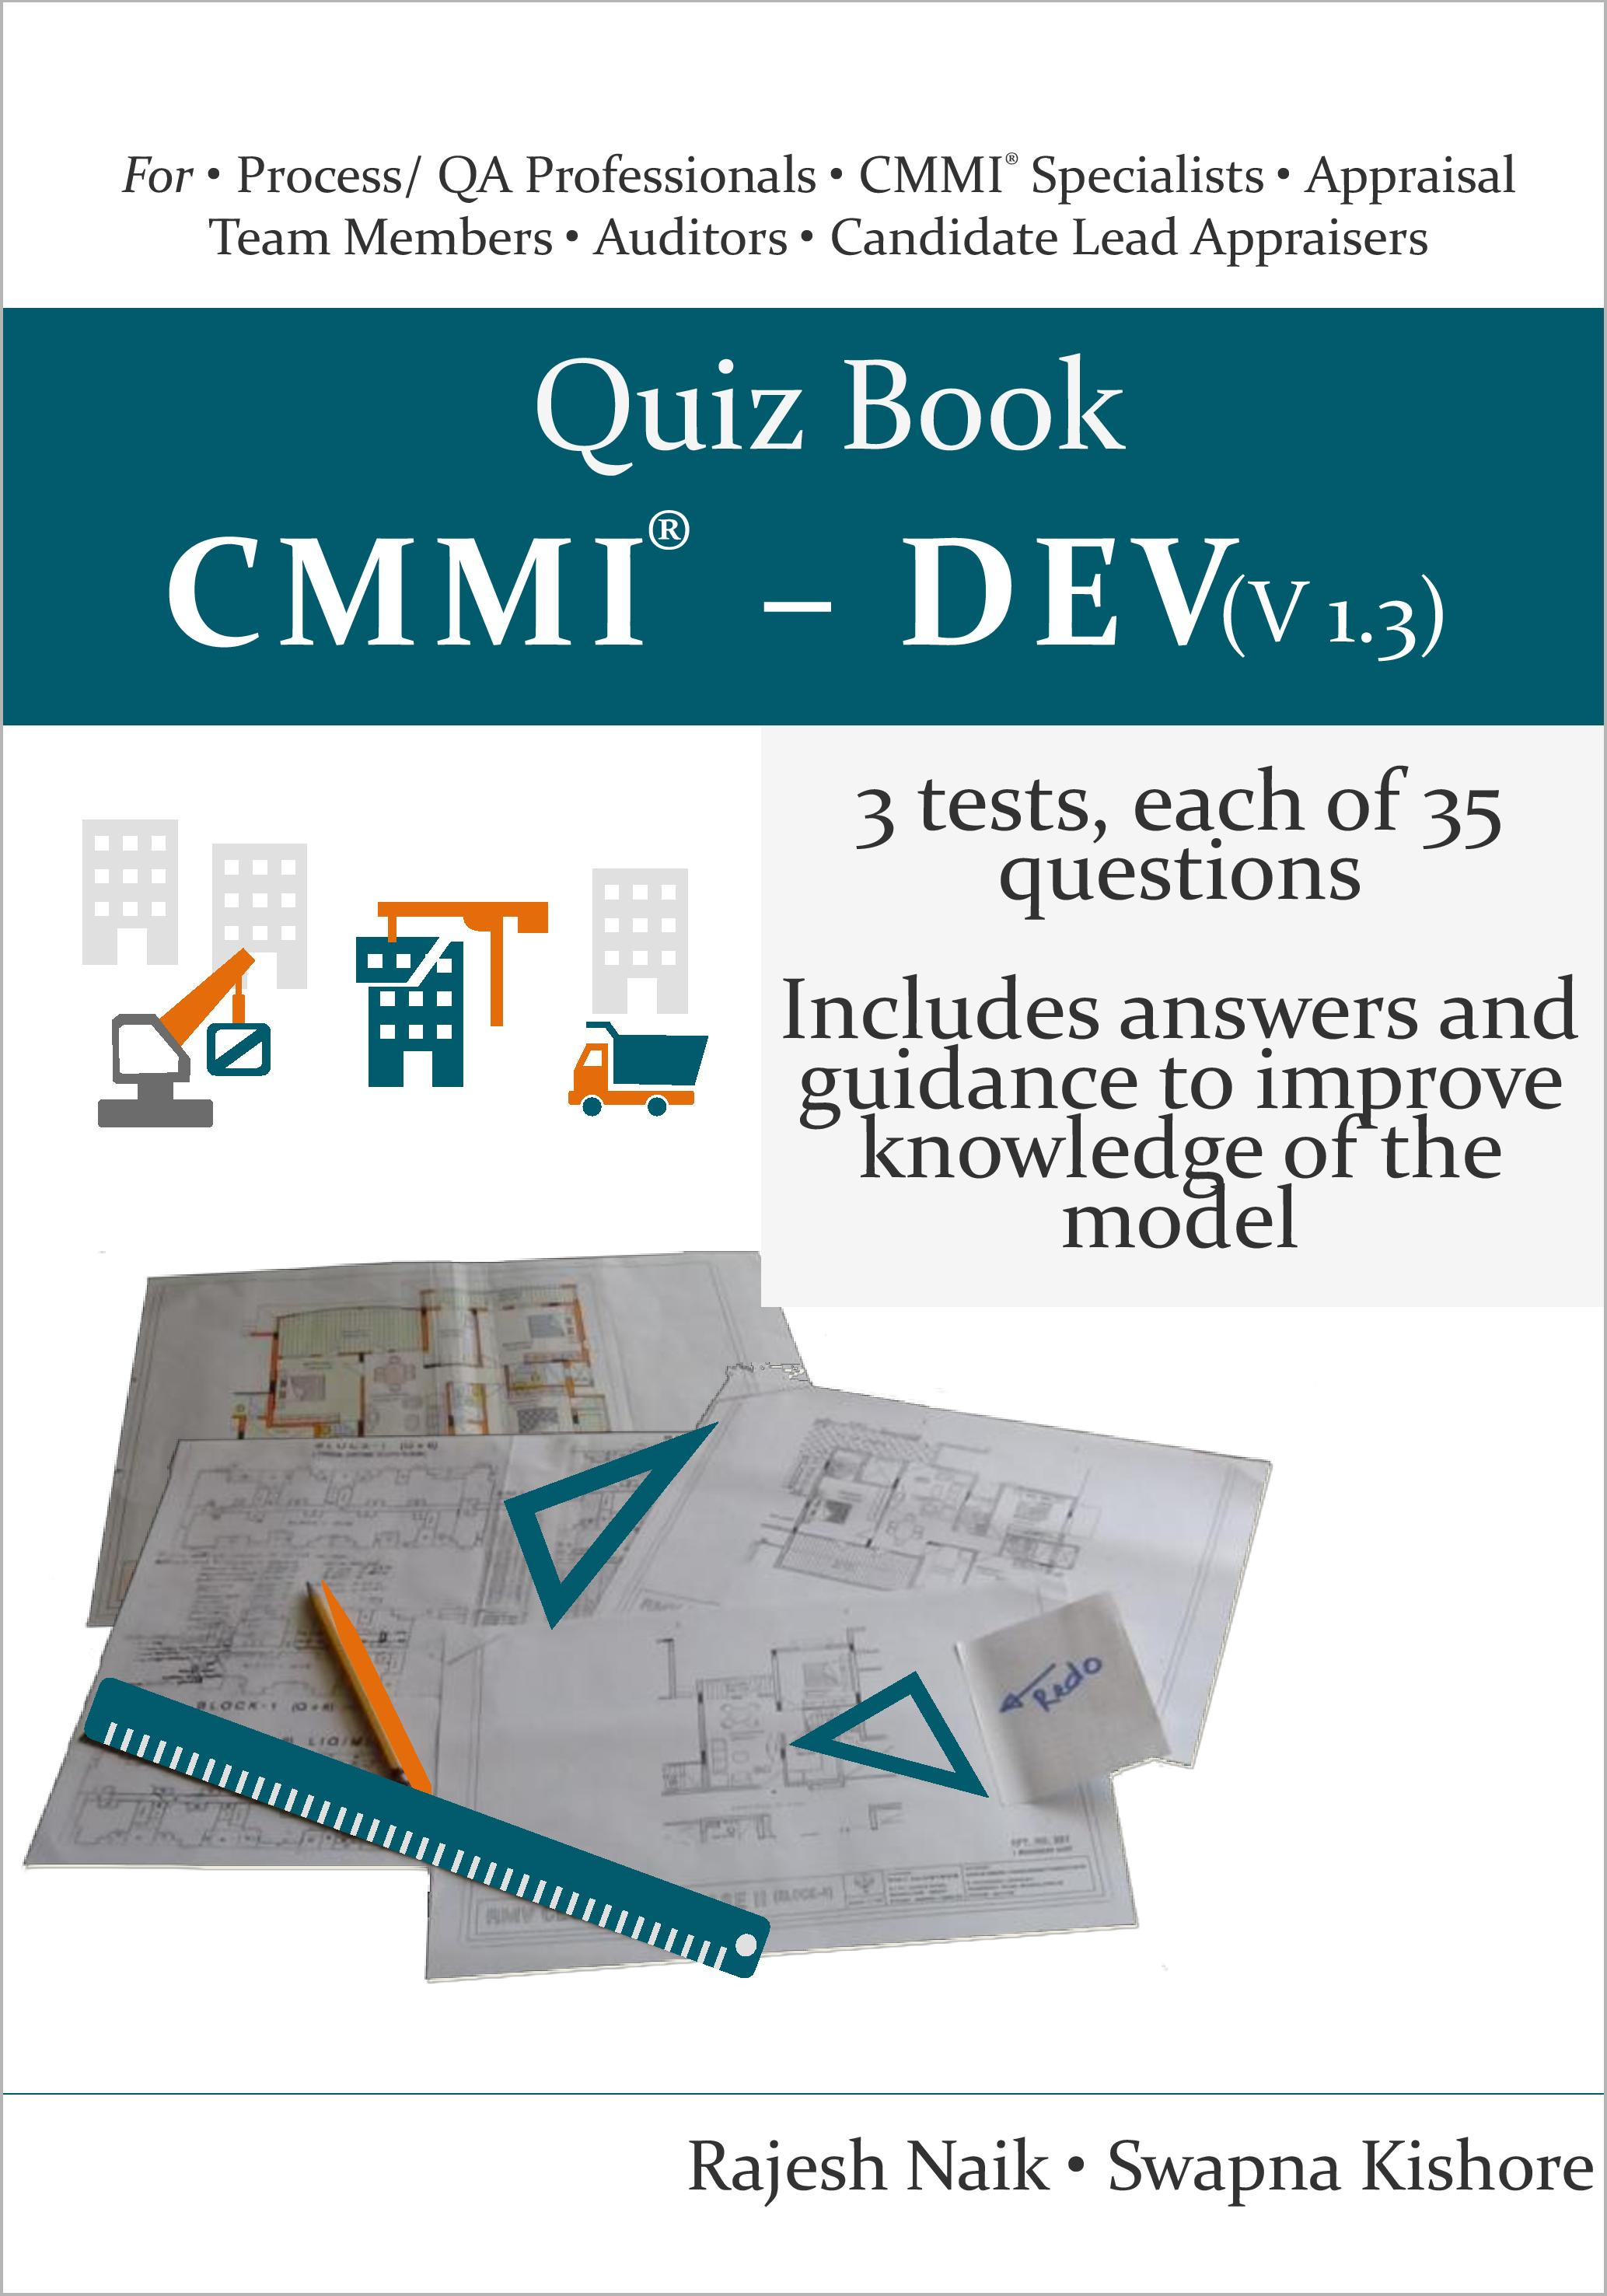 Image forQuiz Book on CMMI – DEV